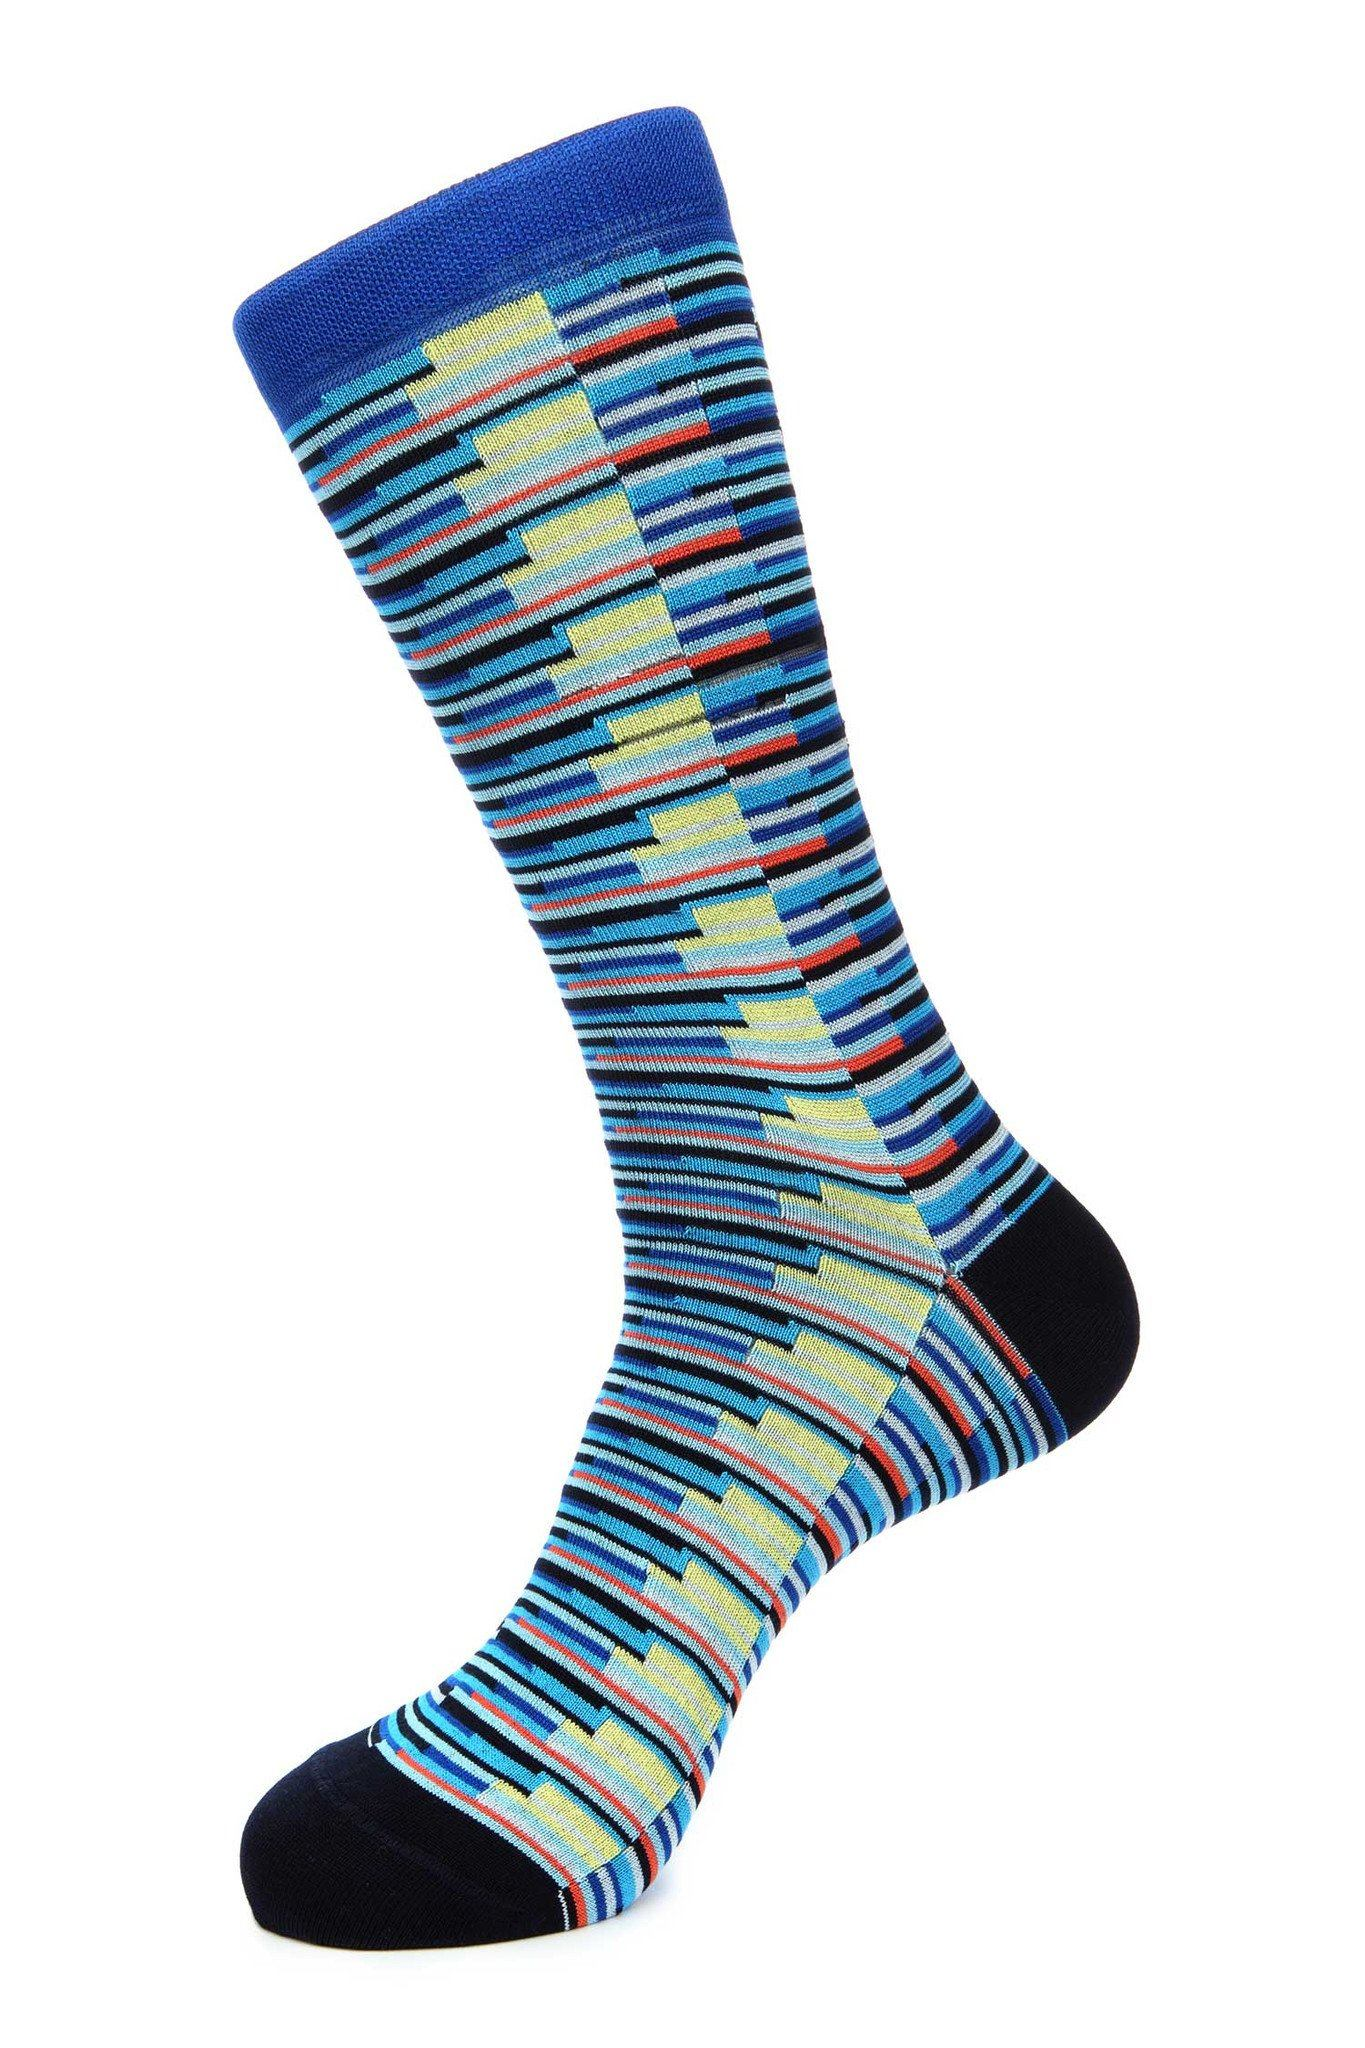 JL-9013-2,socks,Jared Lang, | GentRow.com